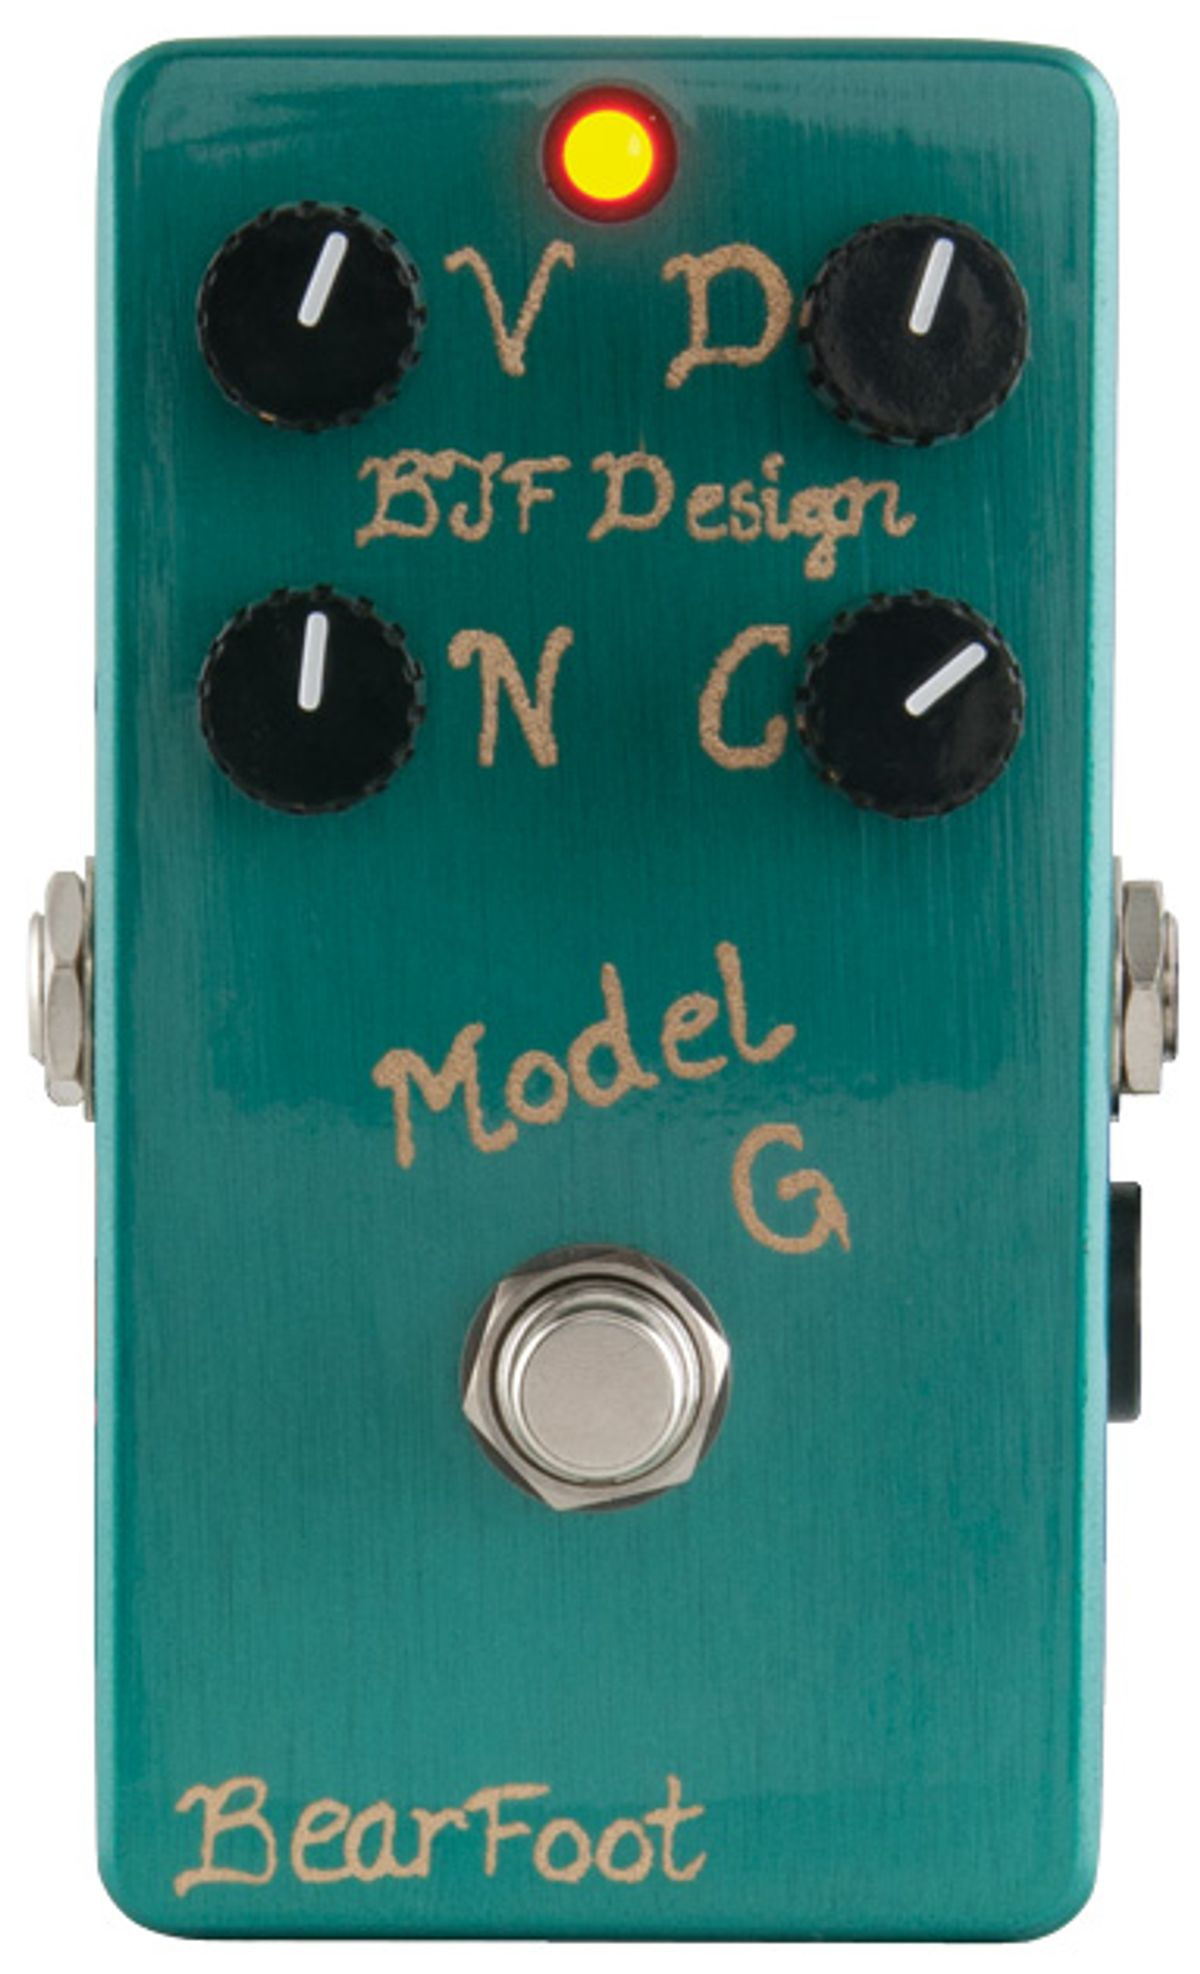 BearFoot Effects Model G Overdrive Review